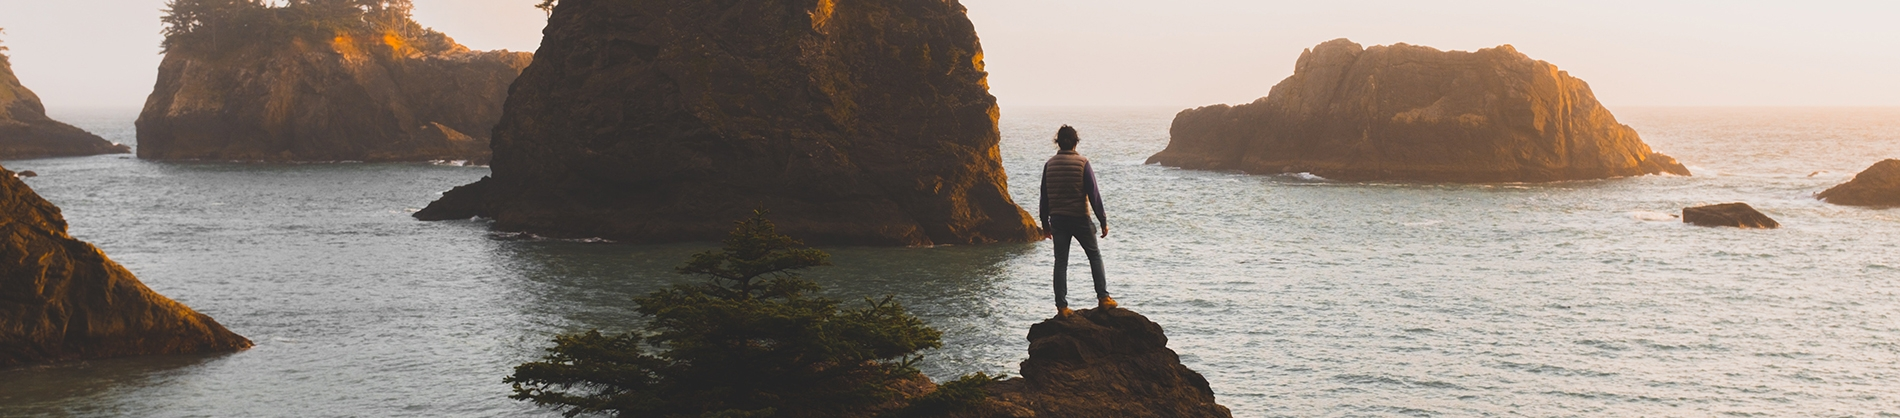 A man stood on a rock overlooking the ocean